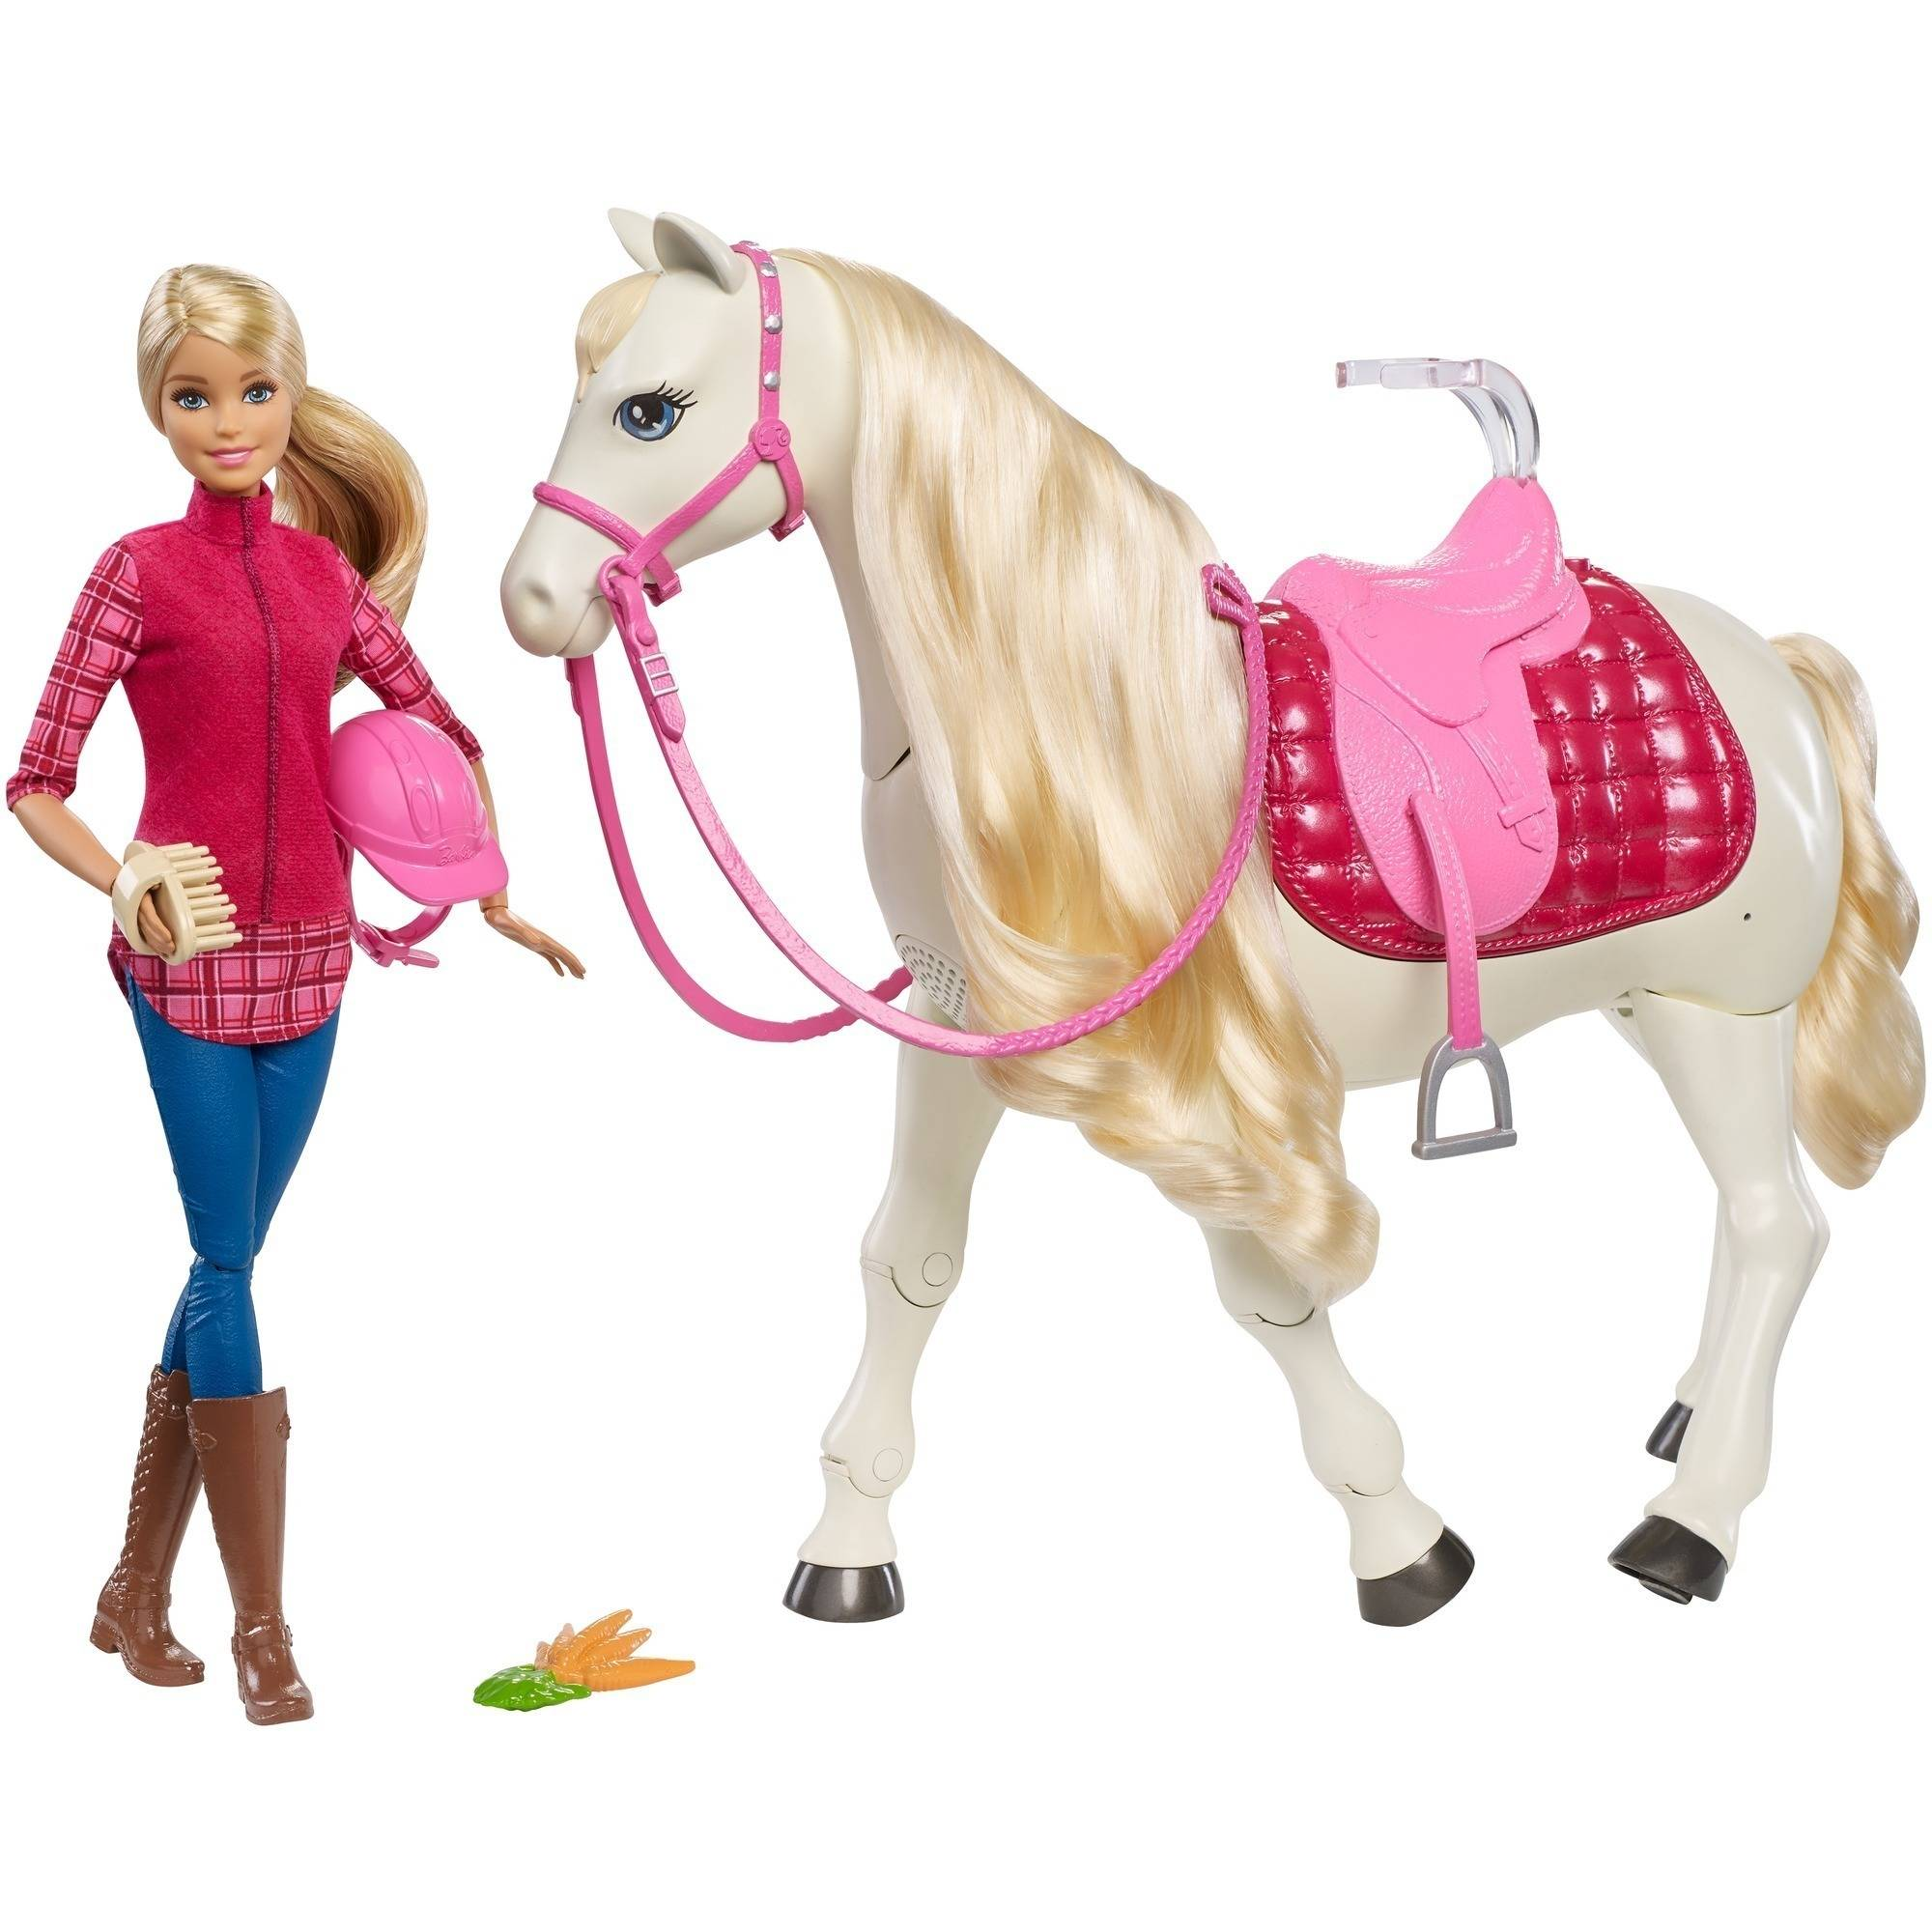 Barbie DreamHorse and Caucasian Doll by Mattel